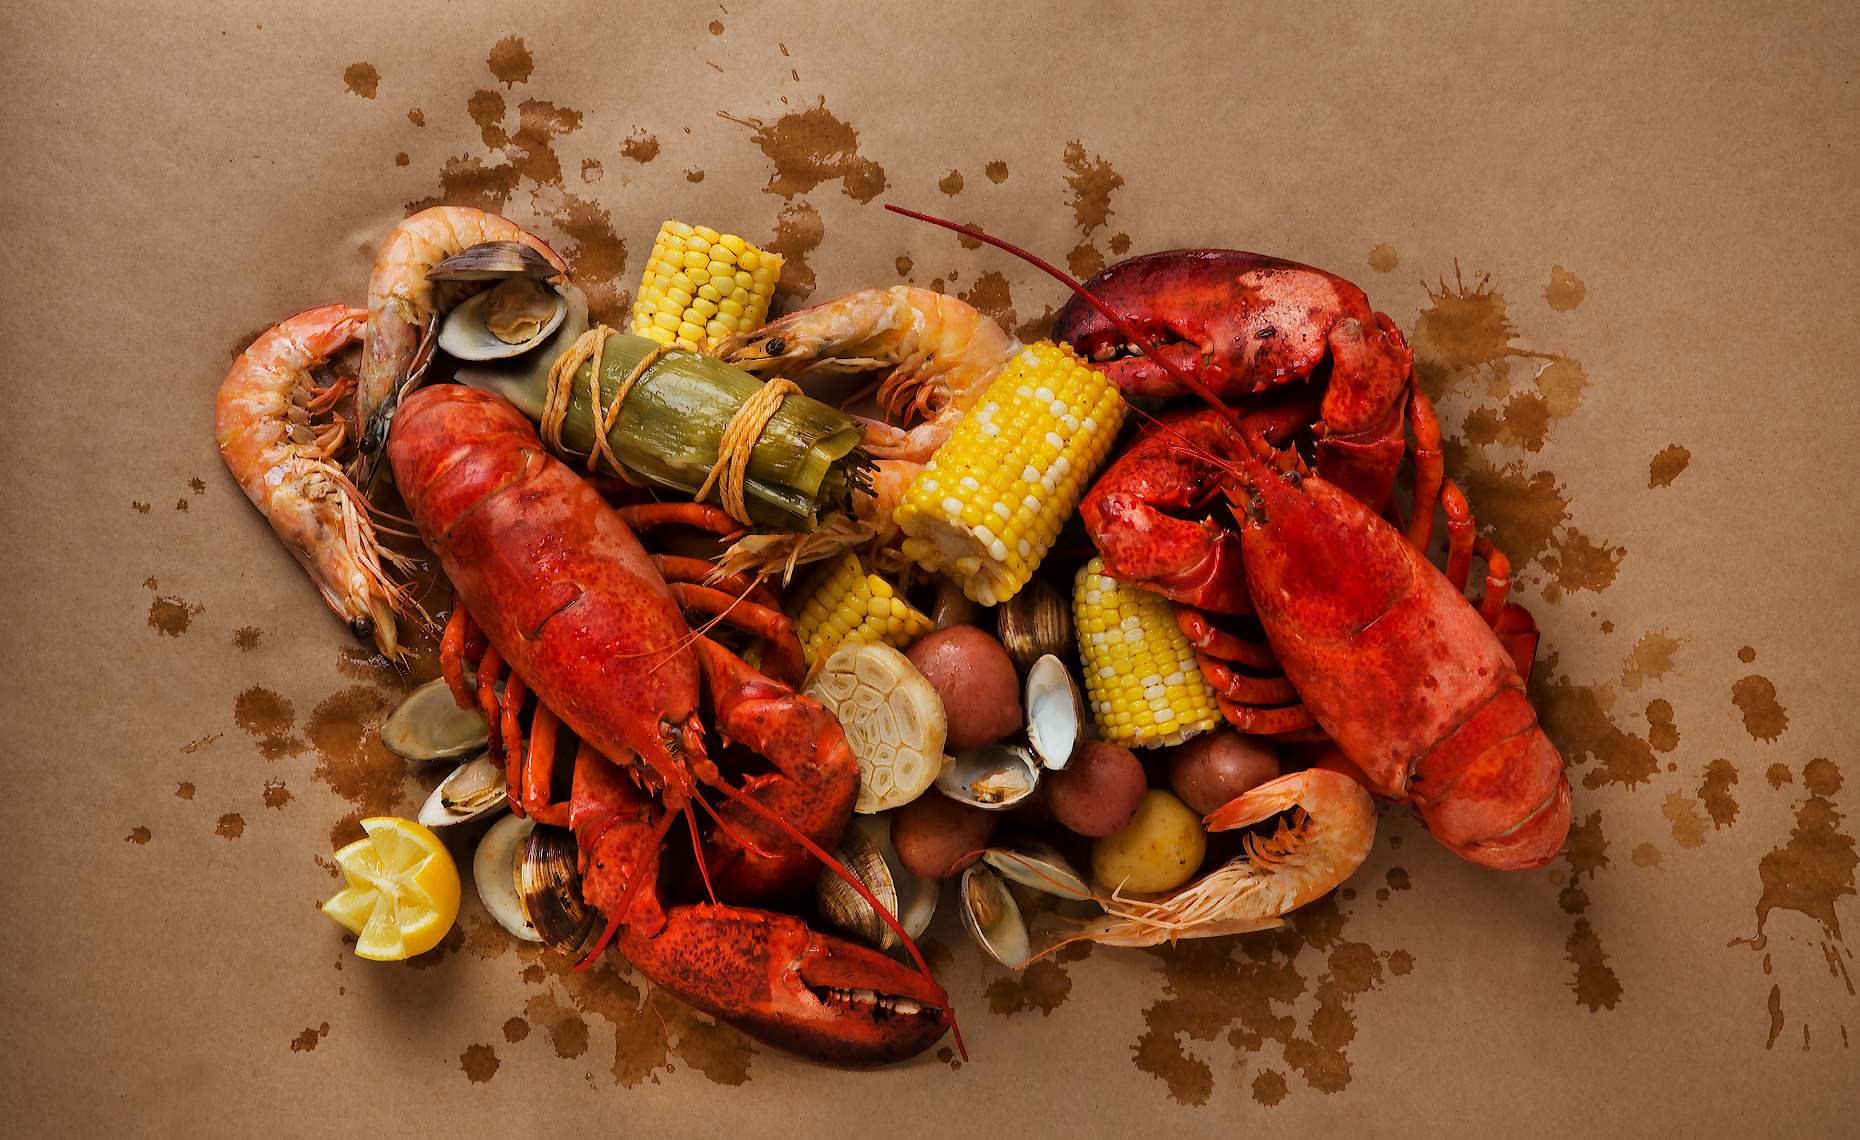 Lobster Clam Bake, Stew, Rose Hodges Food Photography